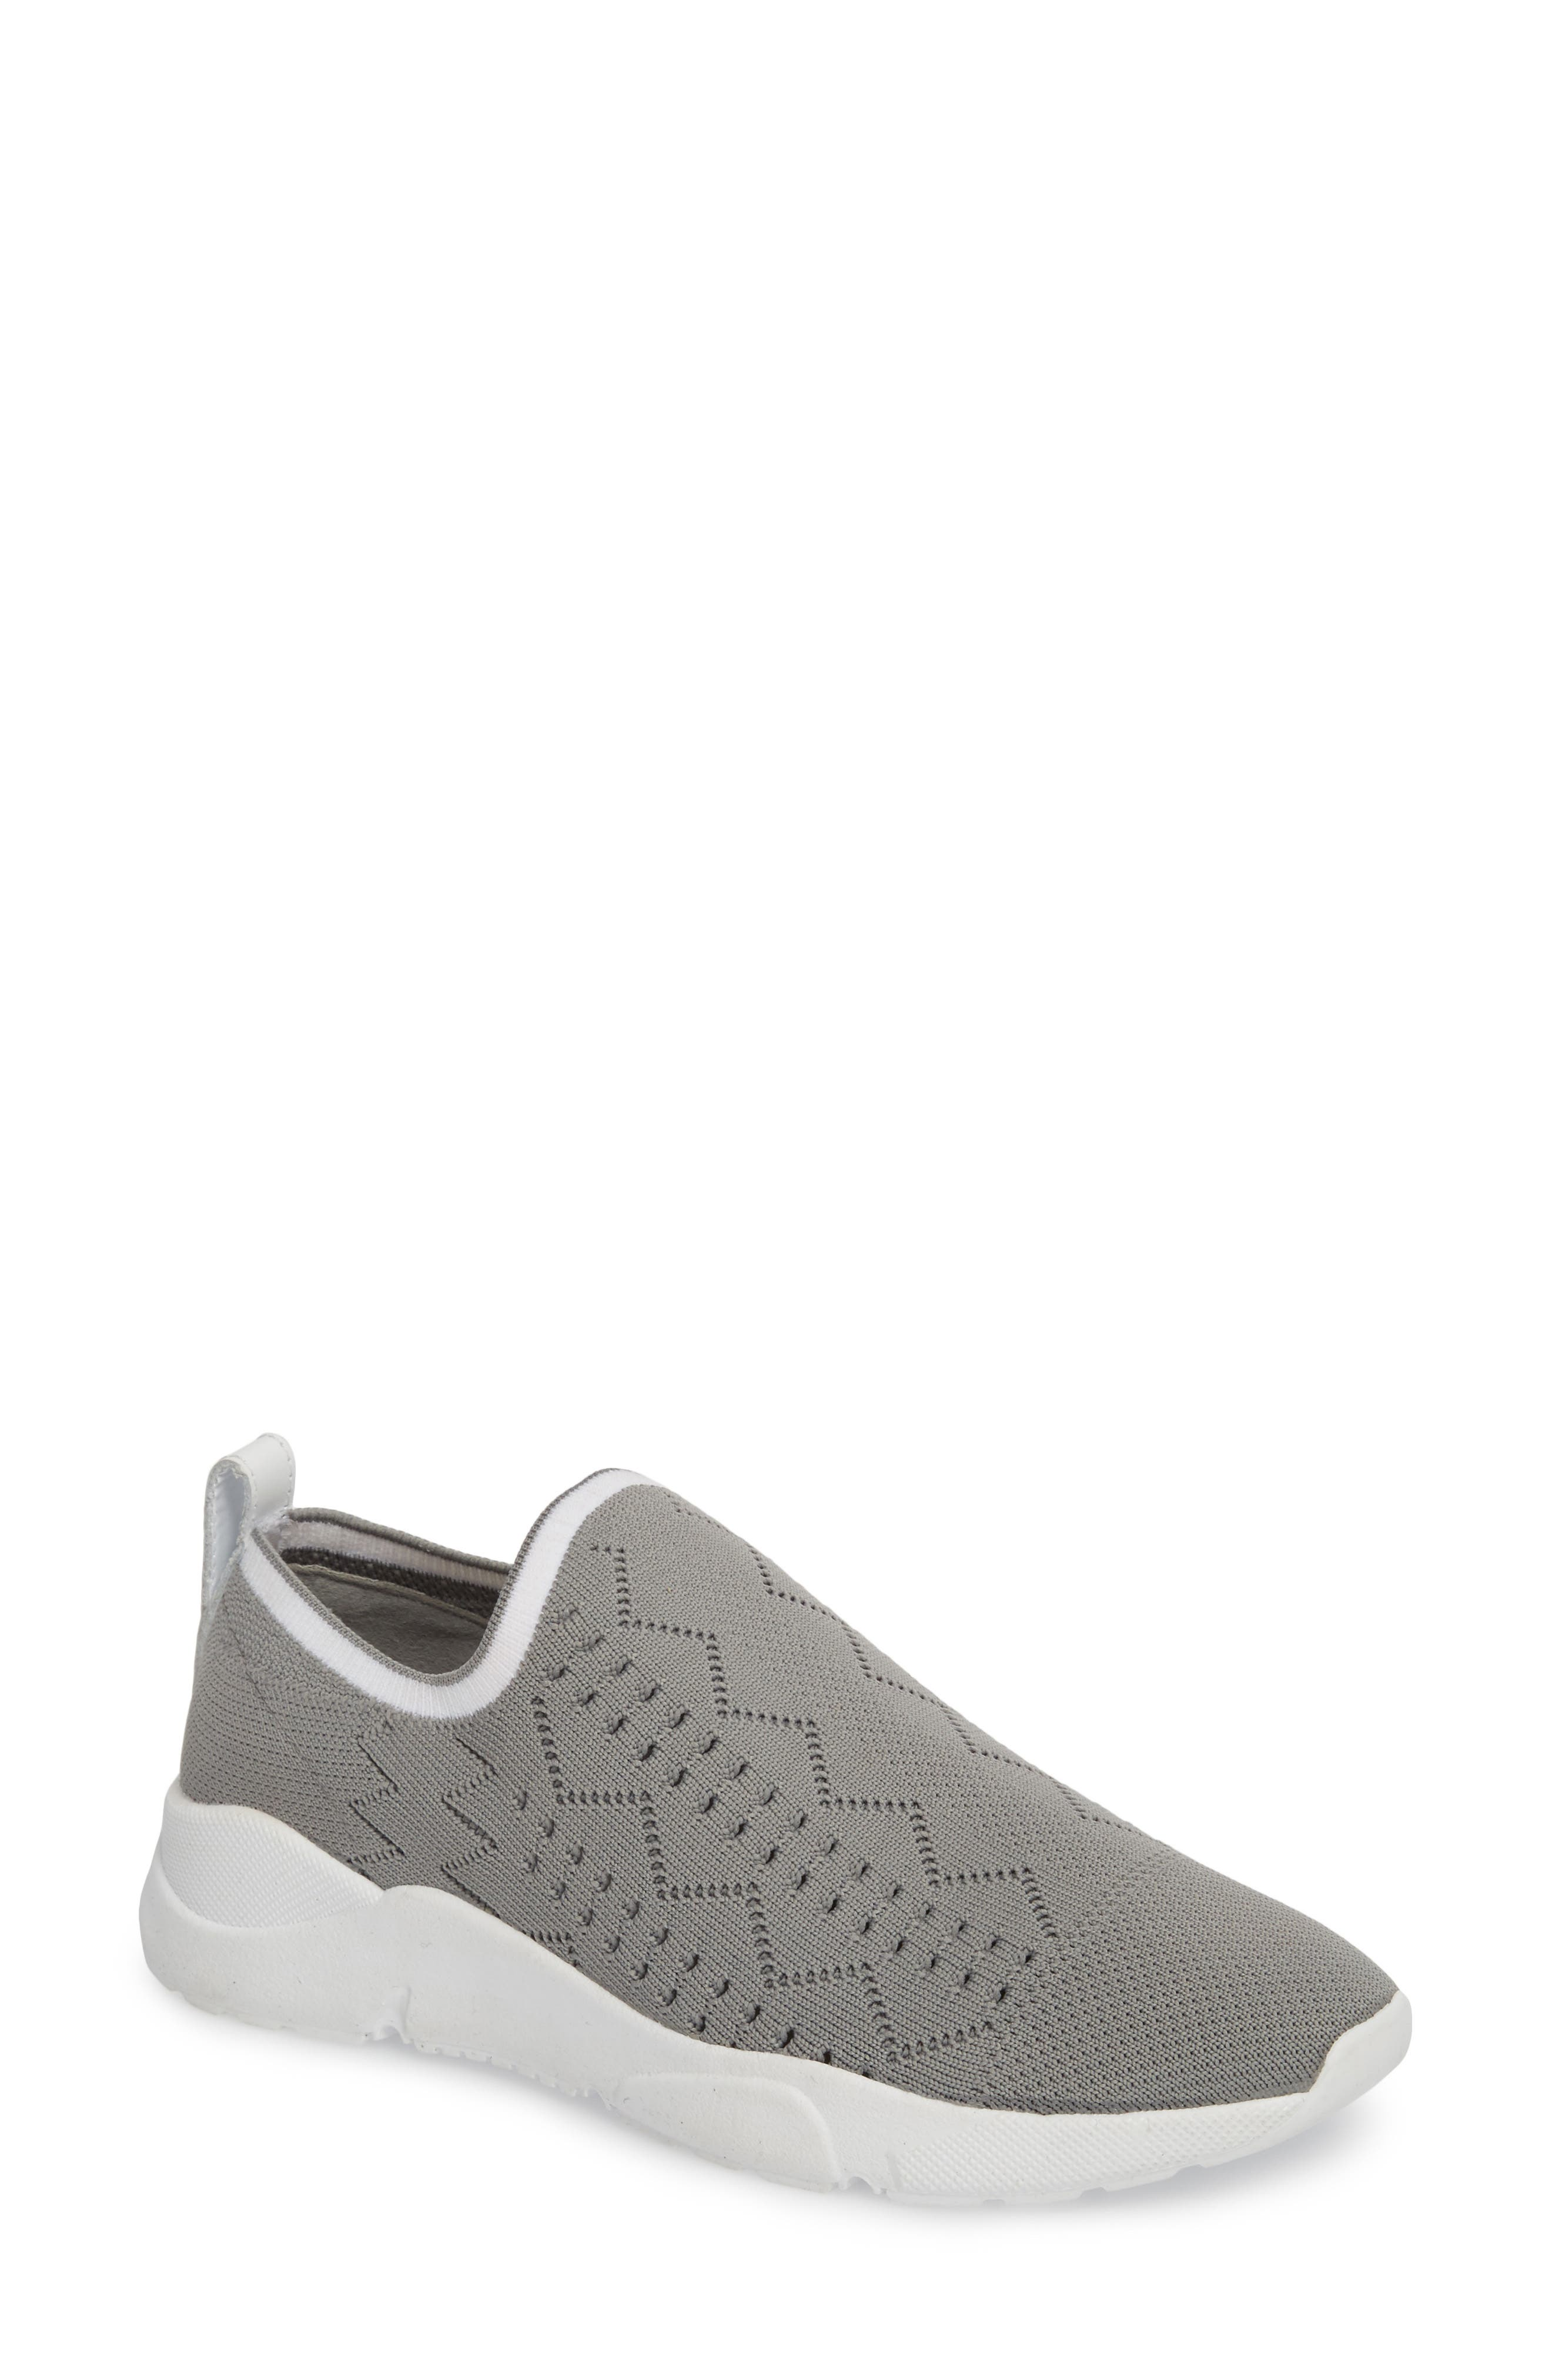 Karrie Slip-On Sneaker,                             Main thumbnail 1, color,                             Grey Stretch Fabric